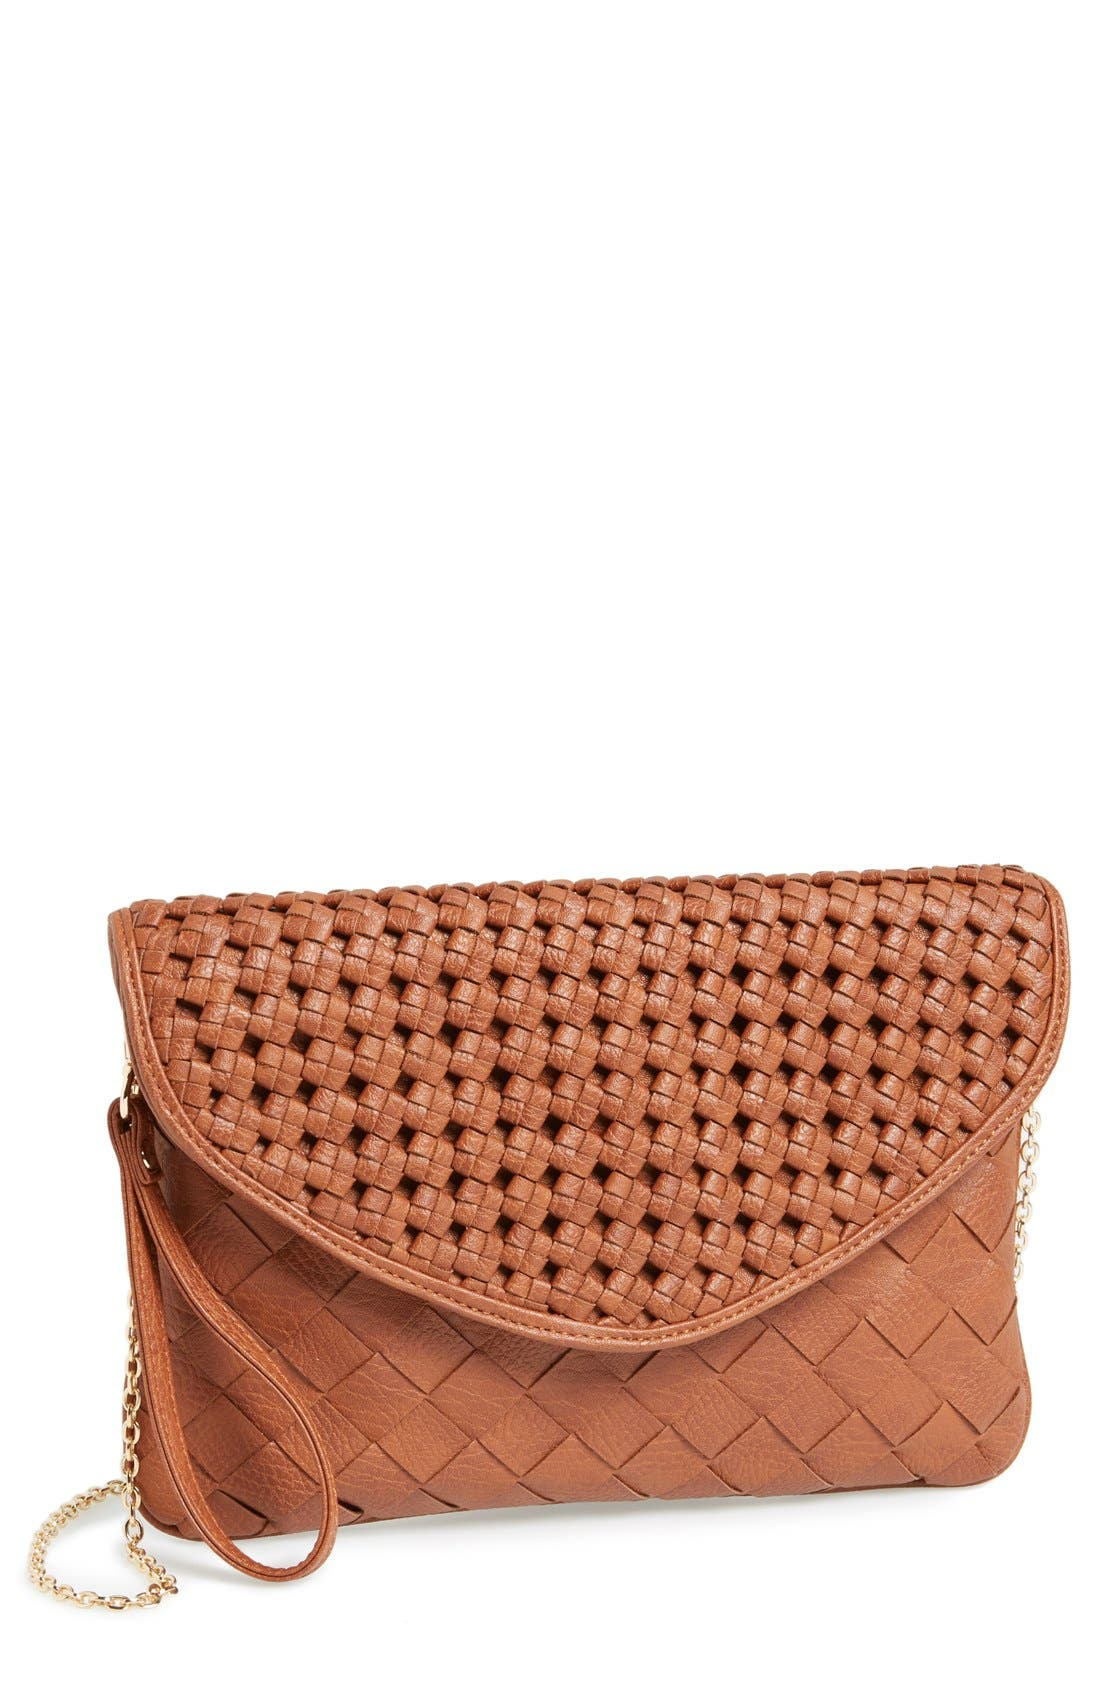 Alternate Image 1 Selected - Sole Society 'Chloe' Woven Faux Leather Clutch